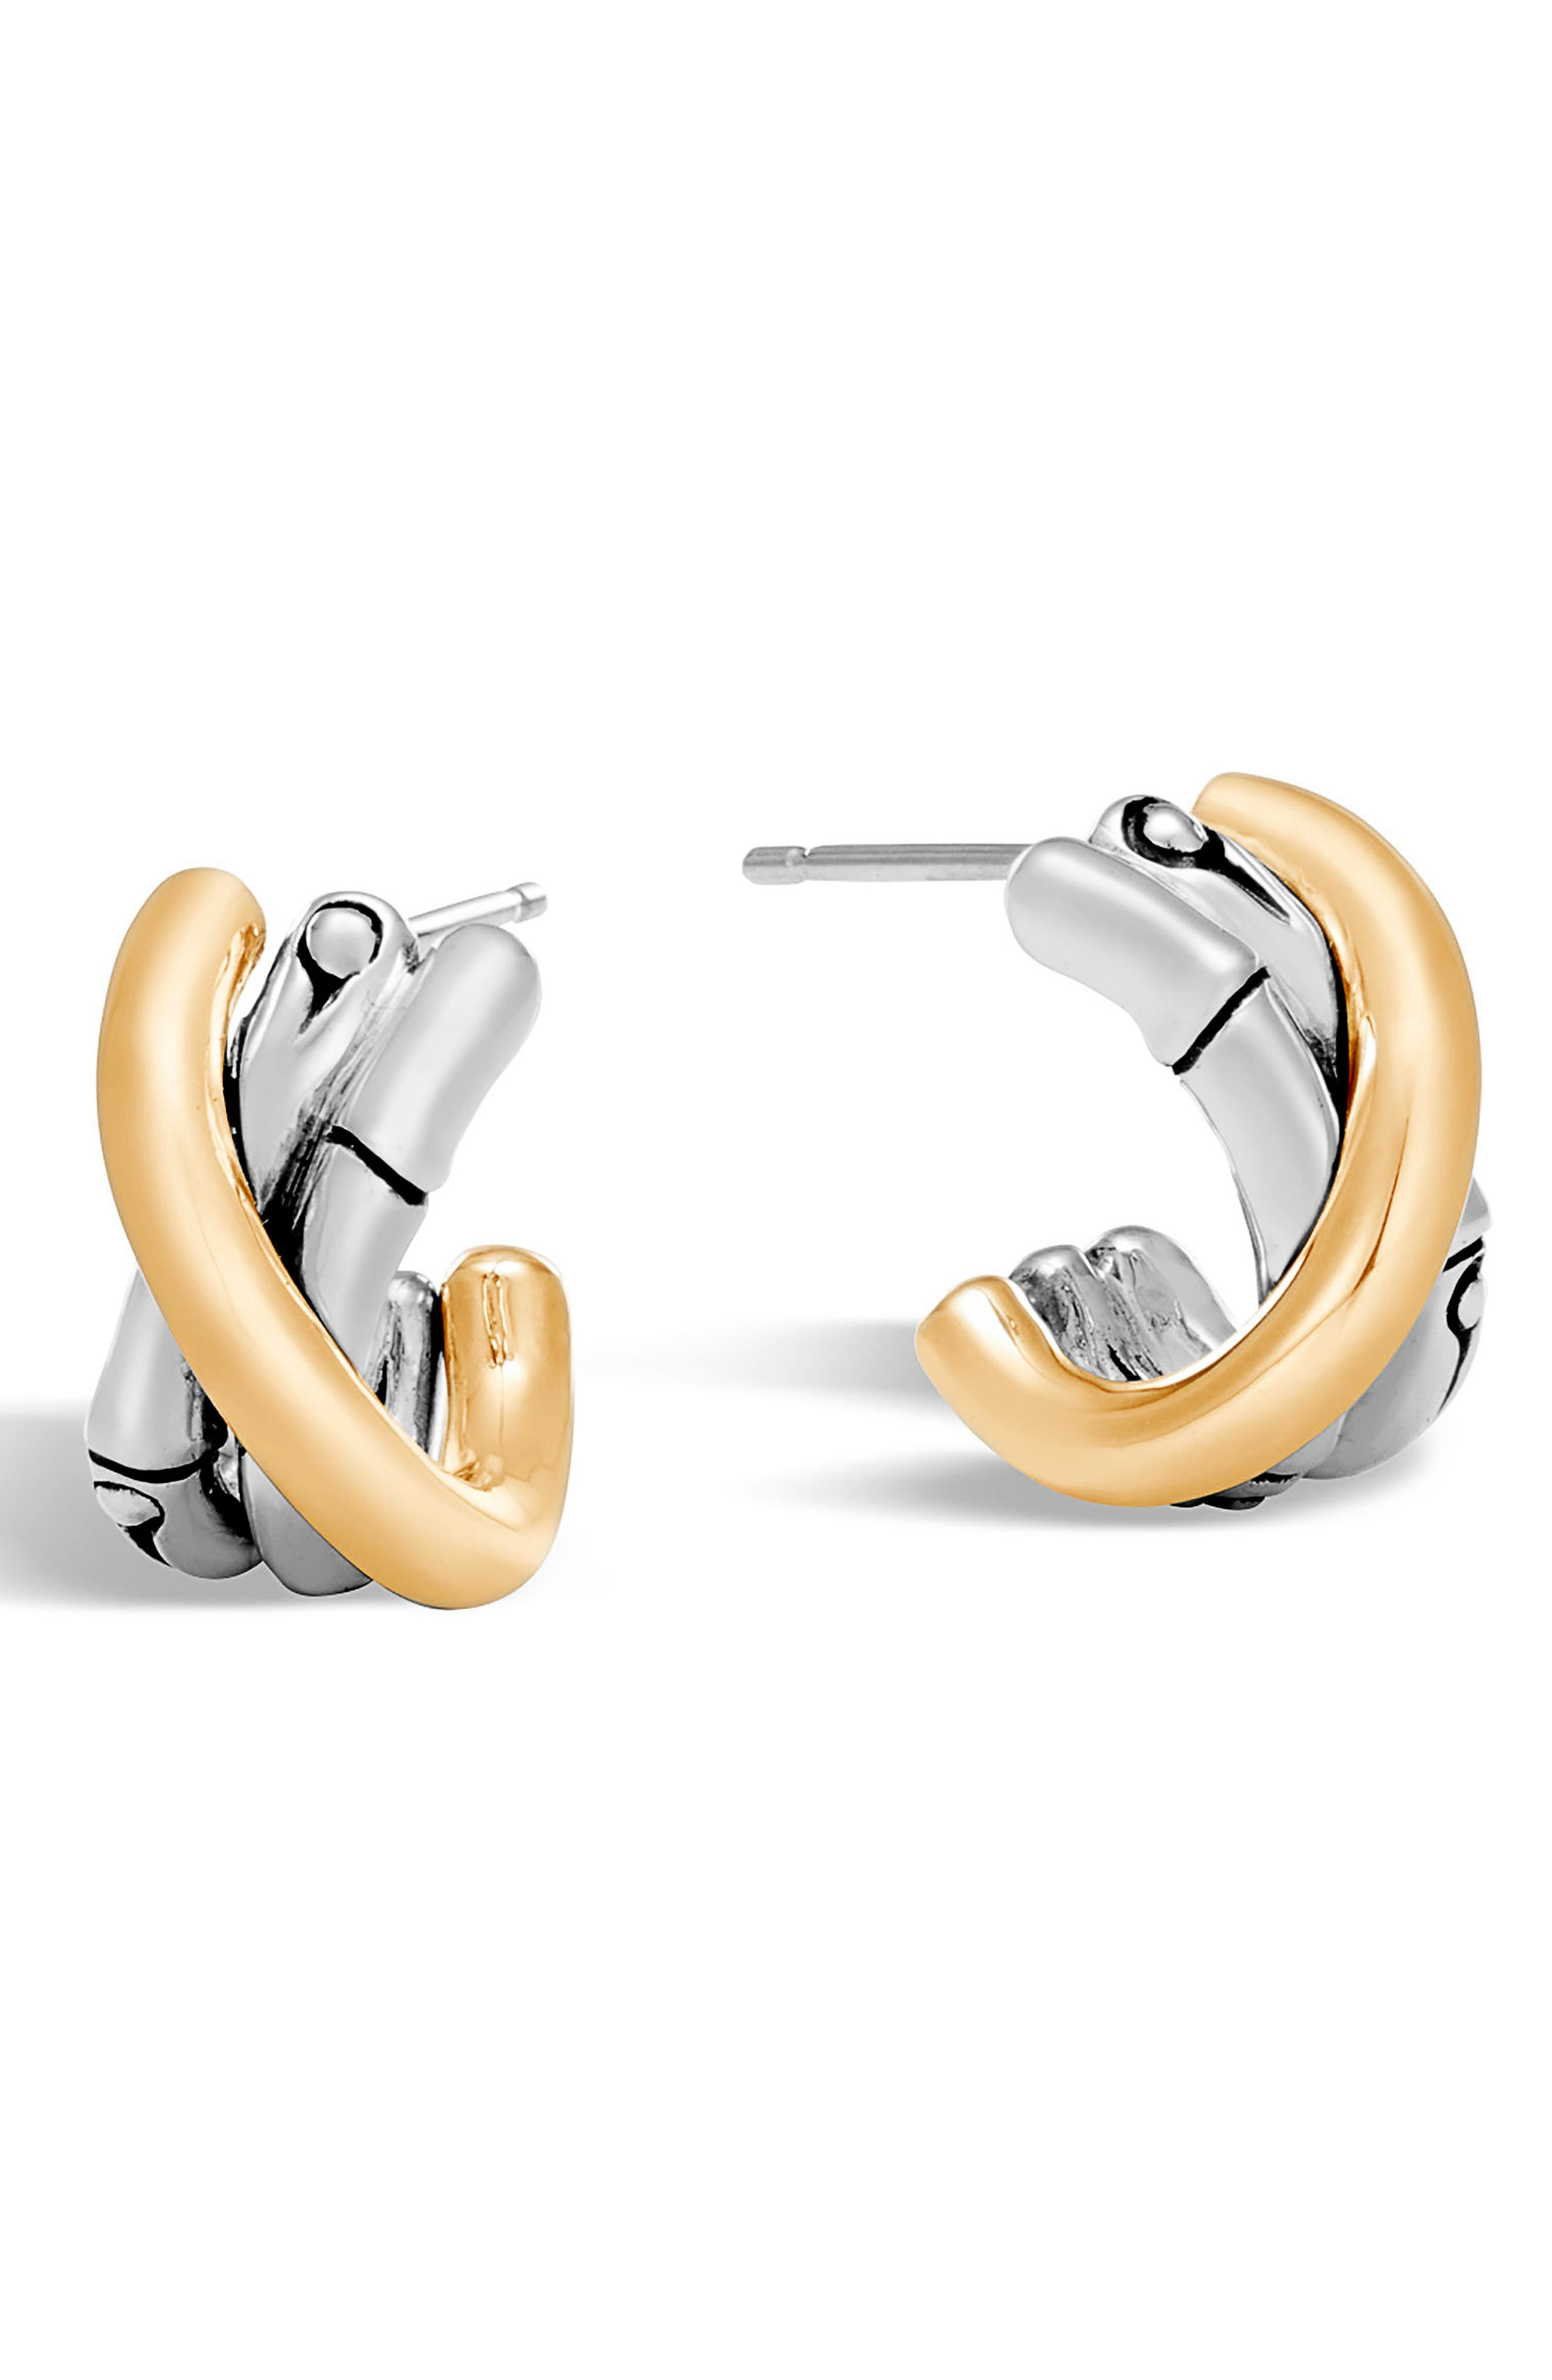 Bamboo Stud Earrings,                             Main thumbnail 1, color,                             SILVER/ GOLD